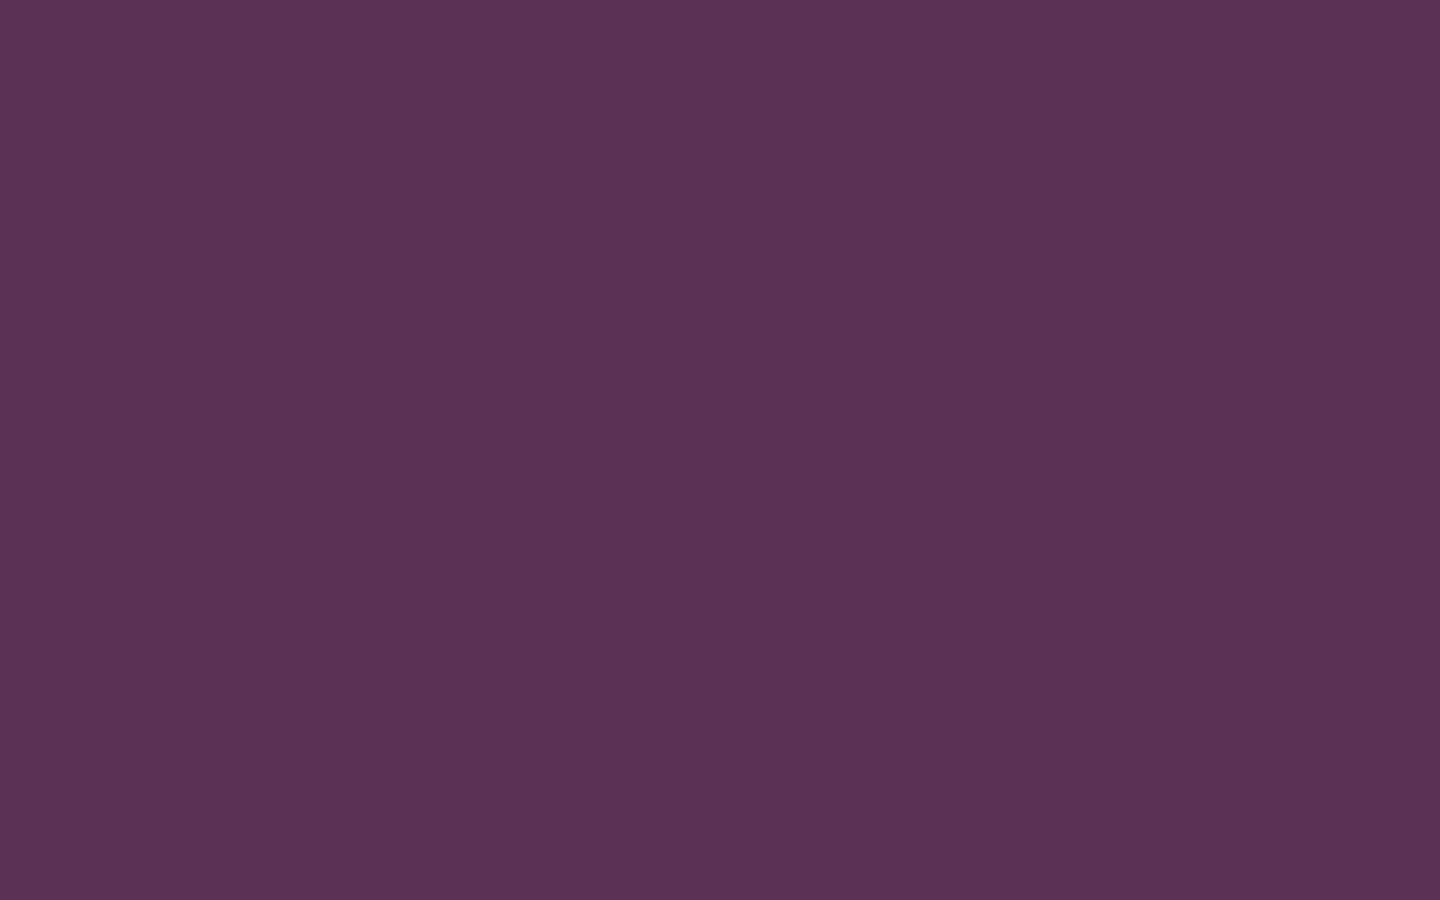 1440x900 Japanese Violet Solid Color Background